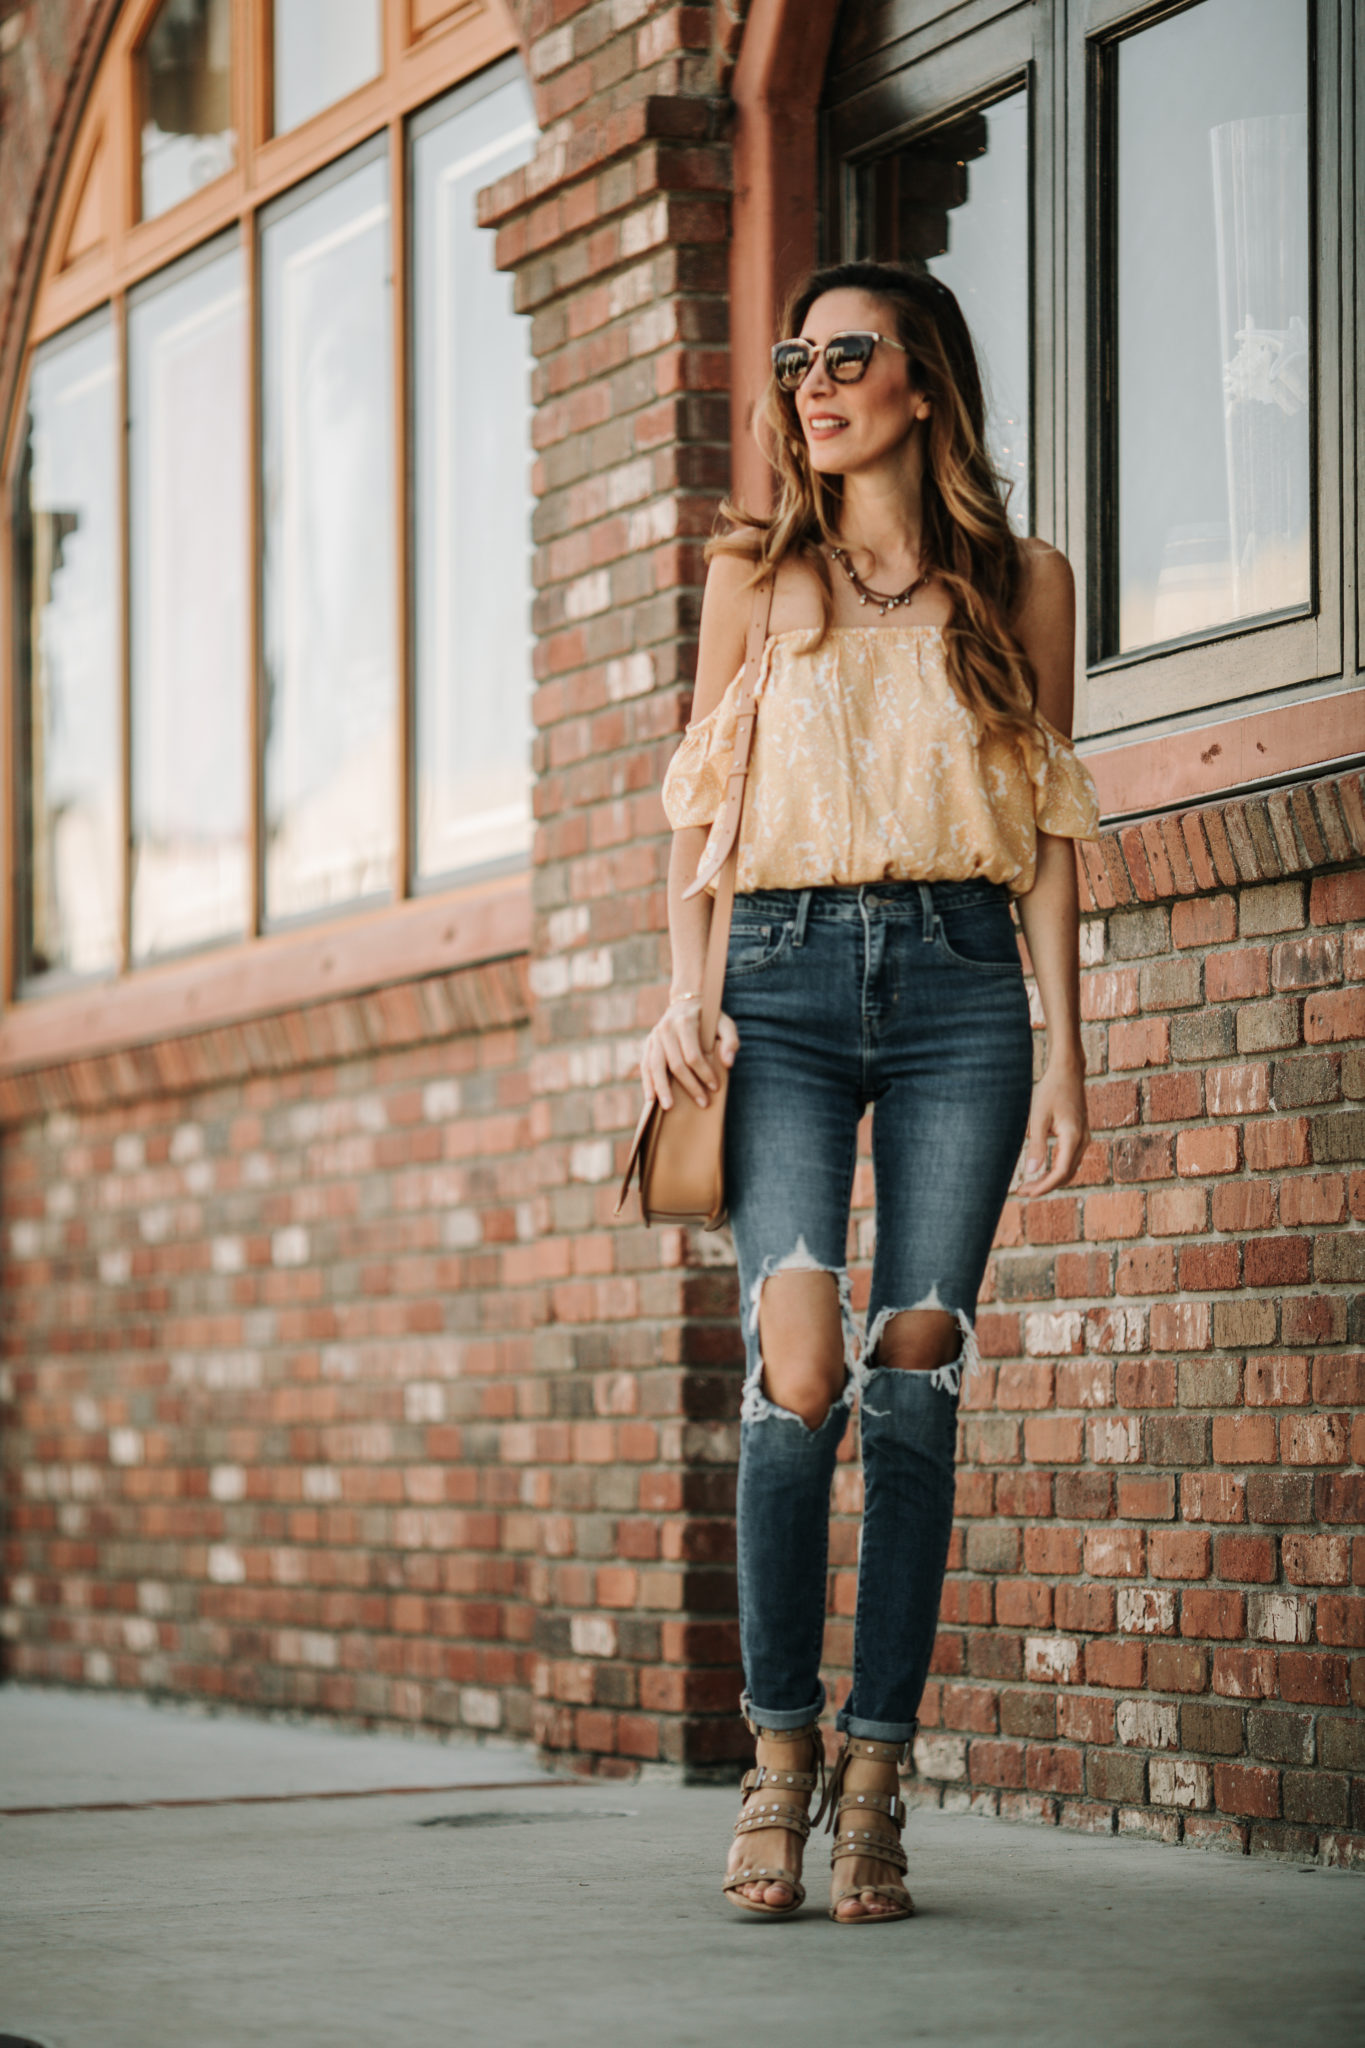 off the shoulder top and ripped jeans